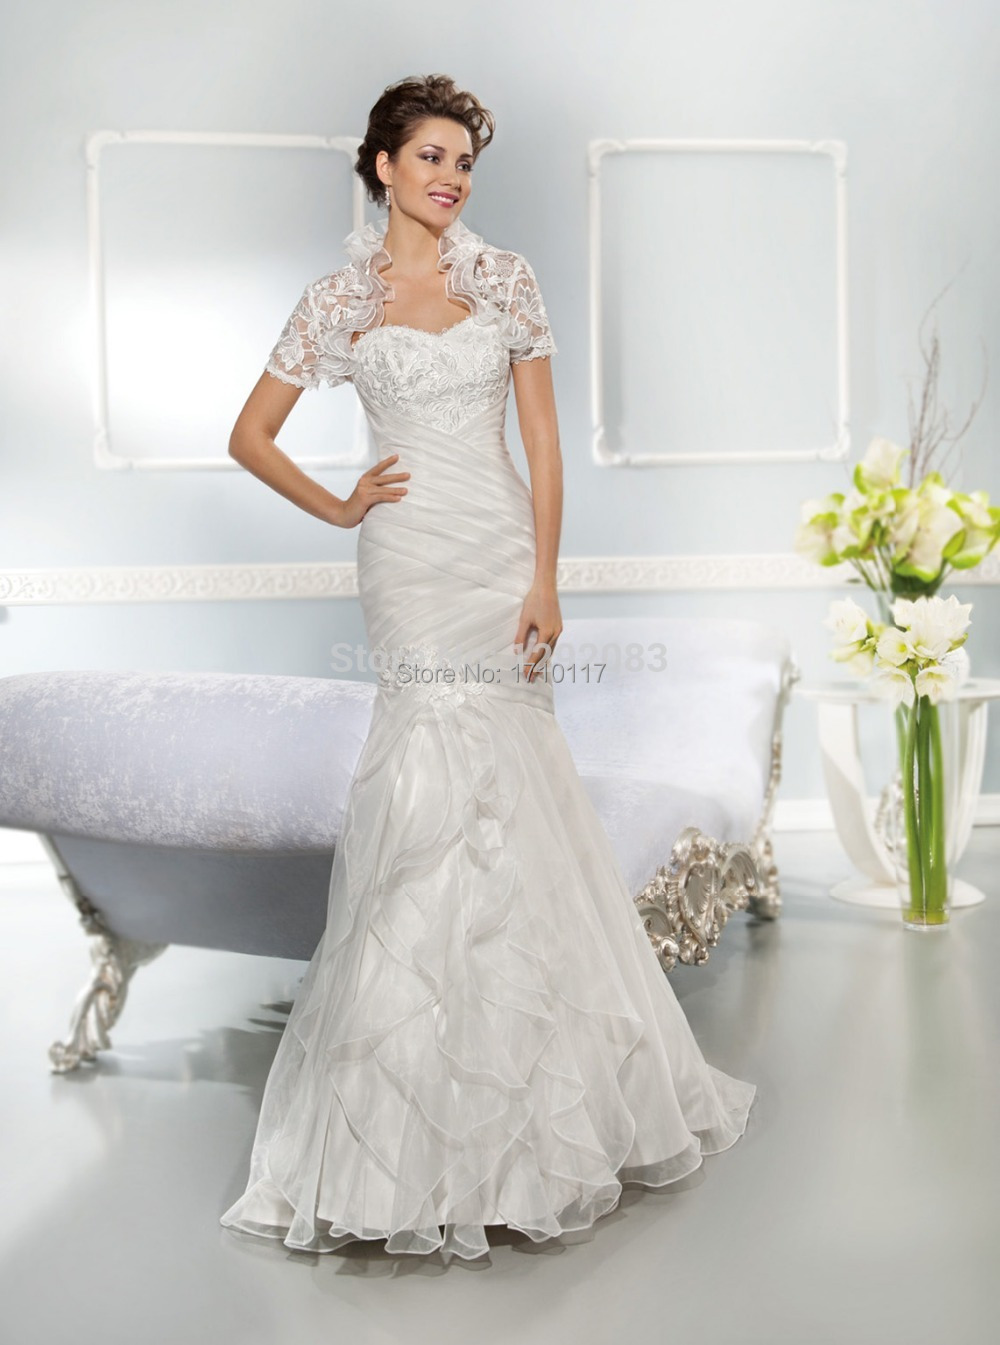 2015 Newest Sweetheart with Embroidery Ruched Lace up Back Long Mermaid Wedding Dress Ruffles Bridal Gown with Removable Bolero(China (Mainland))